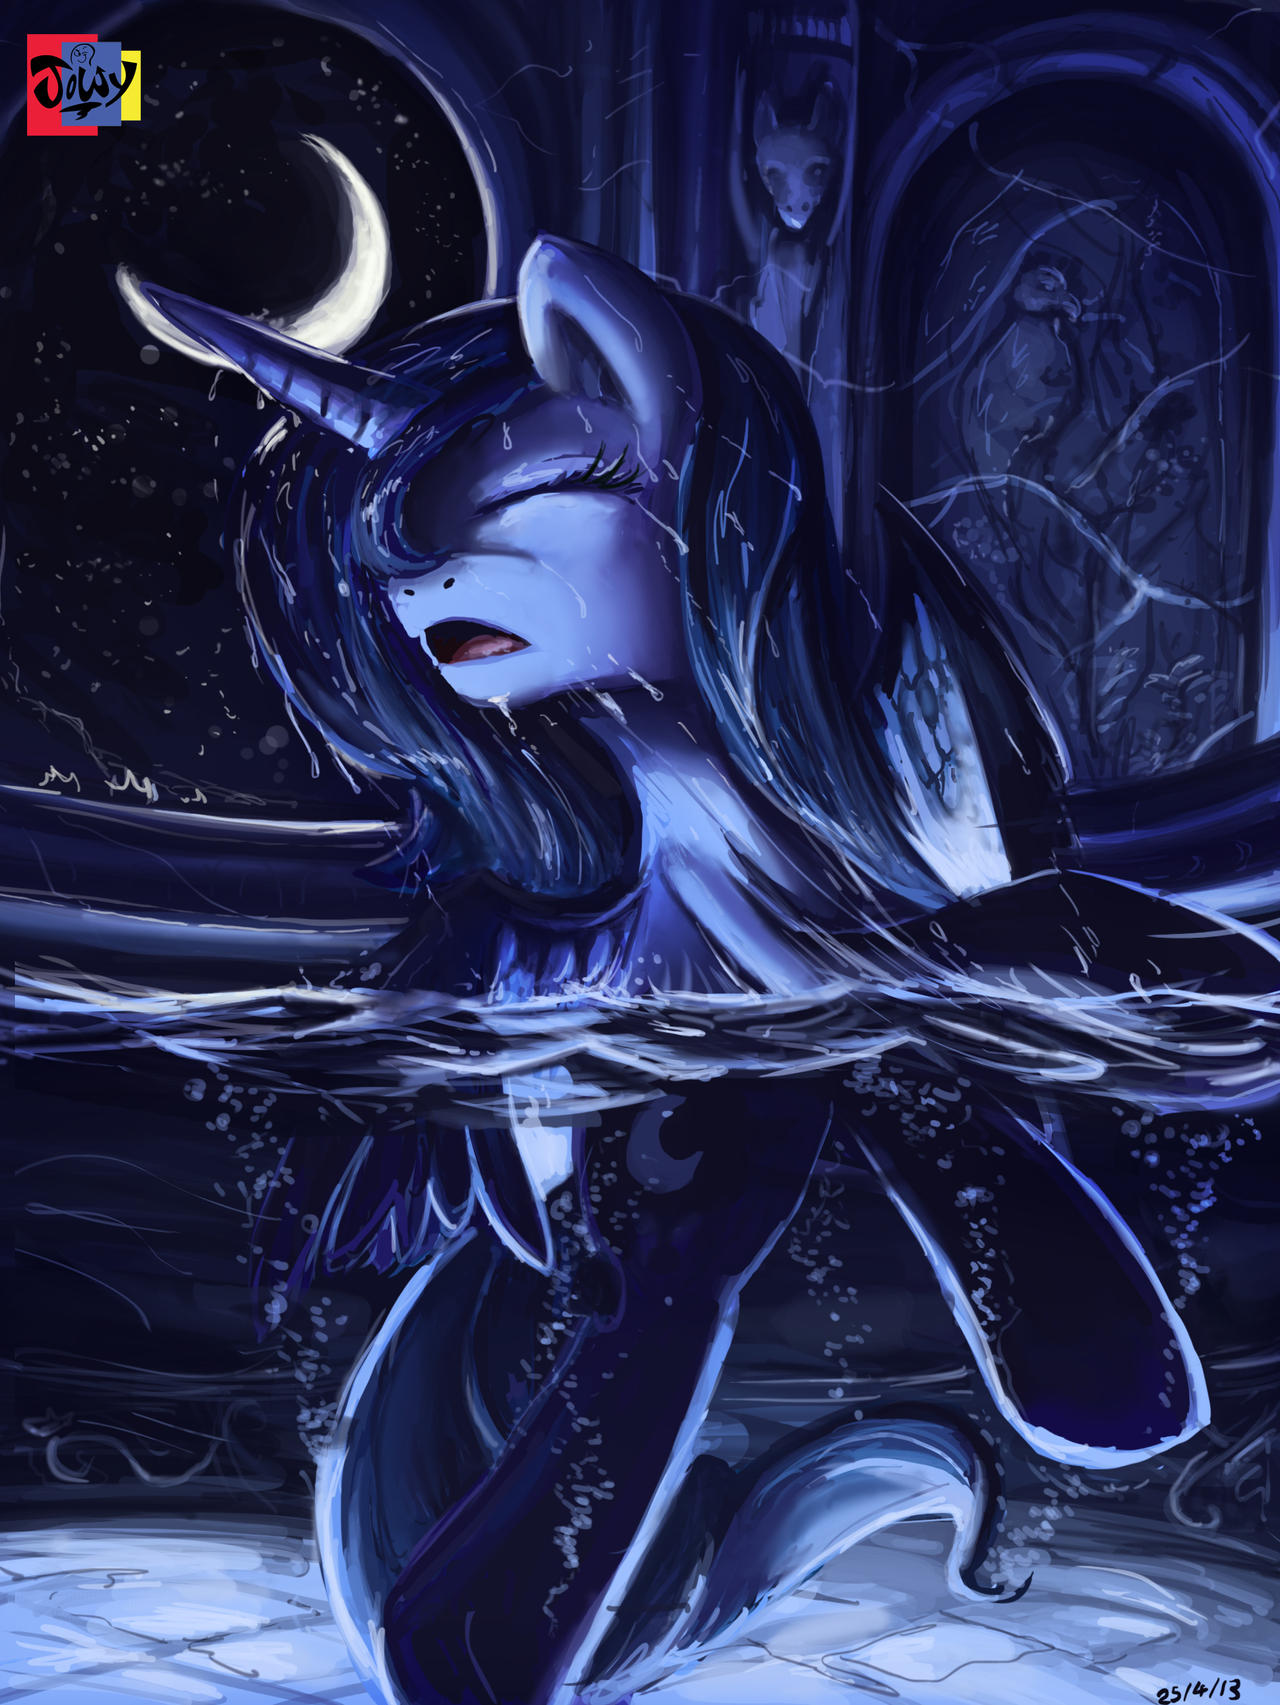 Cleansing night by Jowybean